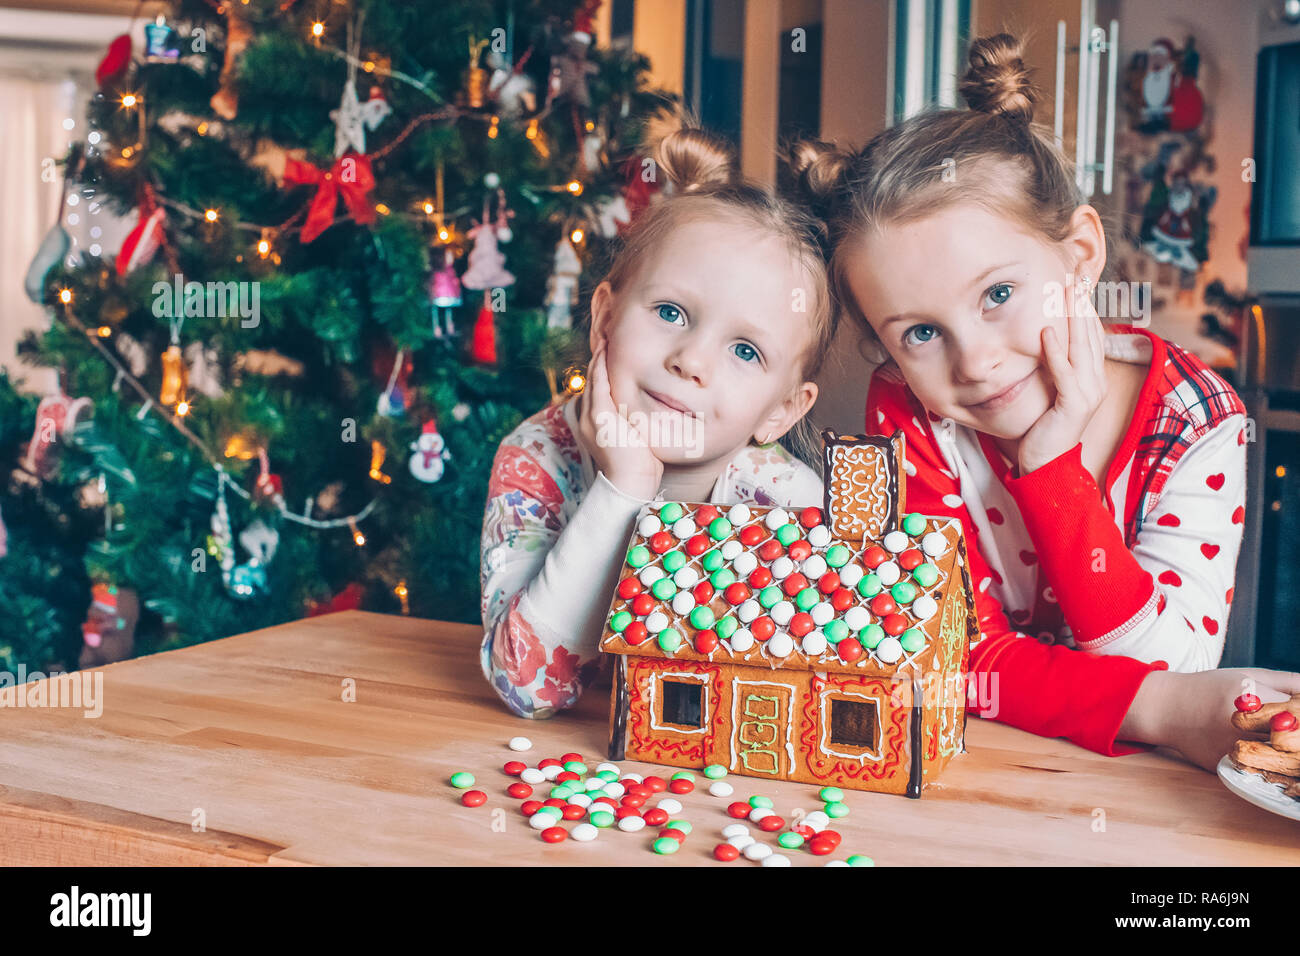 Little Girls Making Christmas Gingerbread House At Fireplace In Decorated Living Room Kids Playing With Ginger Bread Under Christmas Tree Baking And Stock Photo Alamy